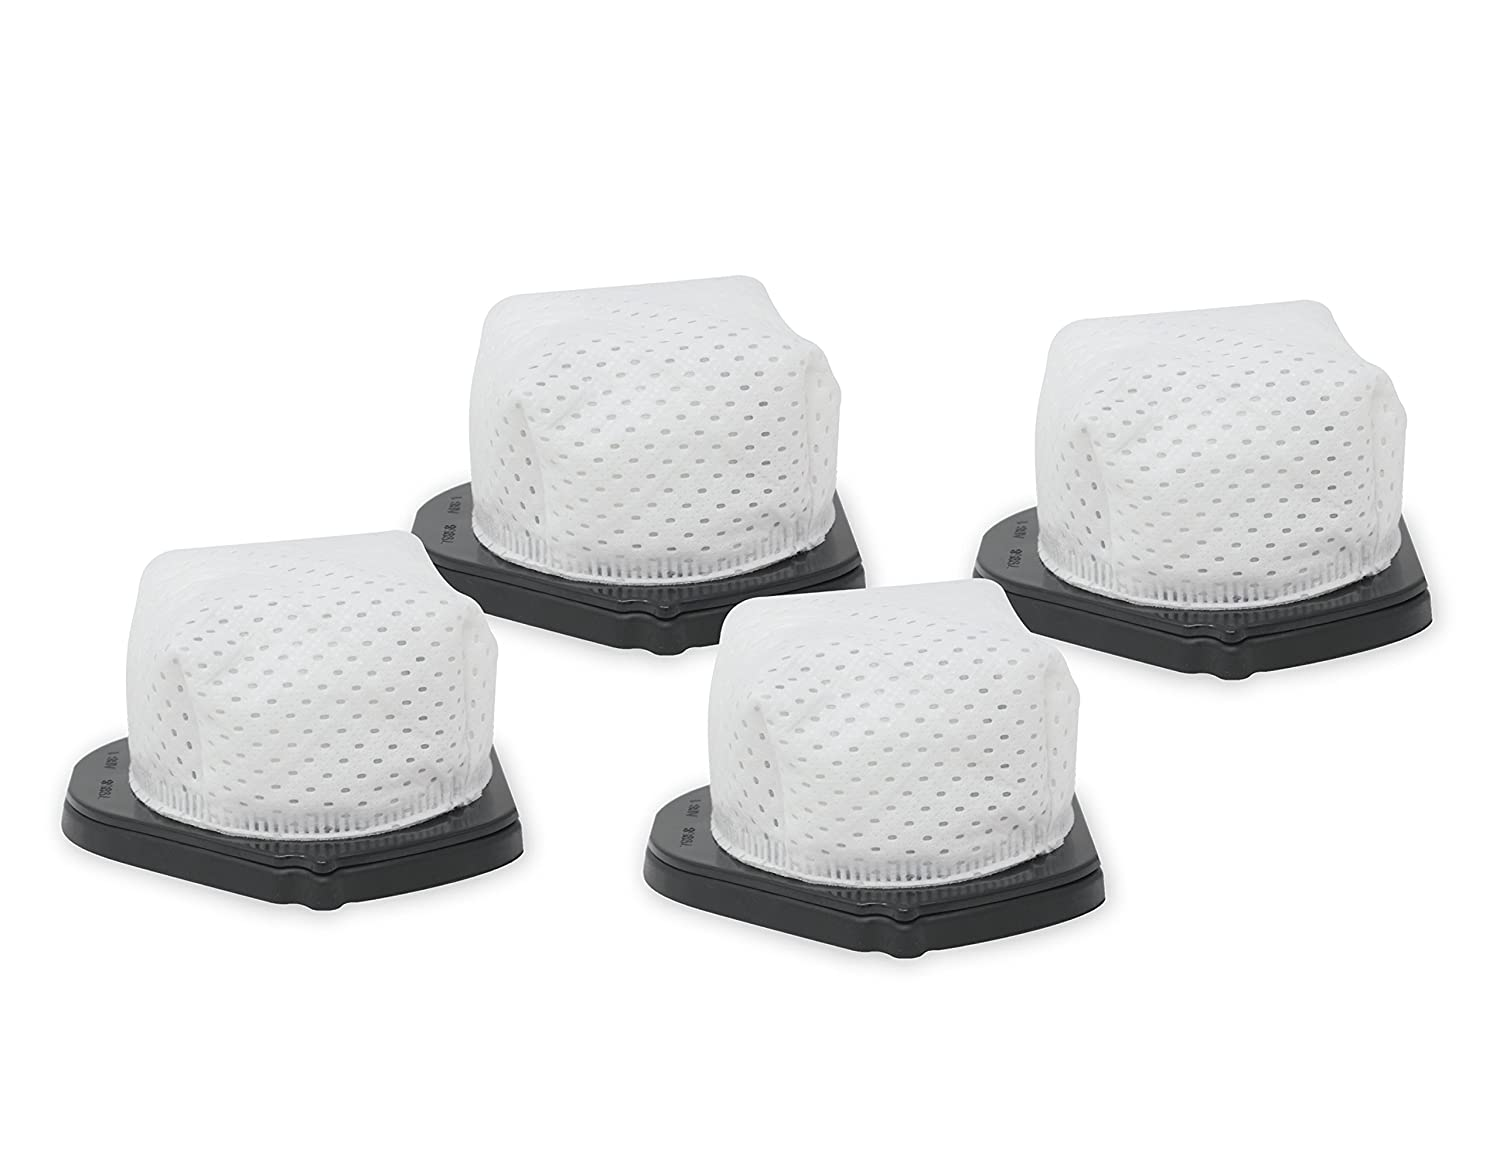 4-Pack Vacuum Dust Cup Filters Compatible with Shark VX33 and SV769 Cordless Hand Vacuums Compare to Part # XF769 Fette Filter